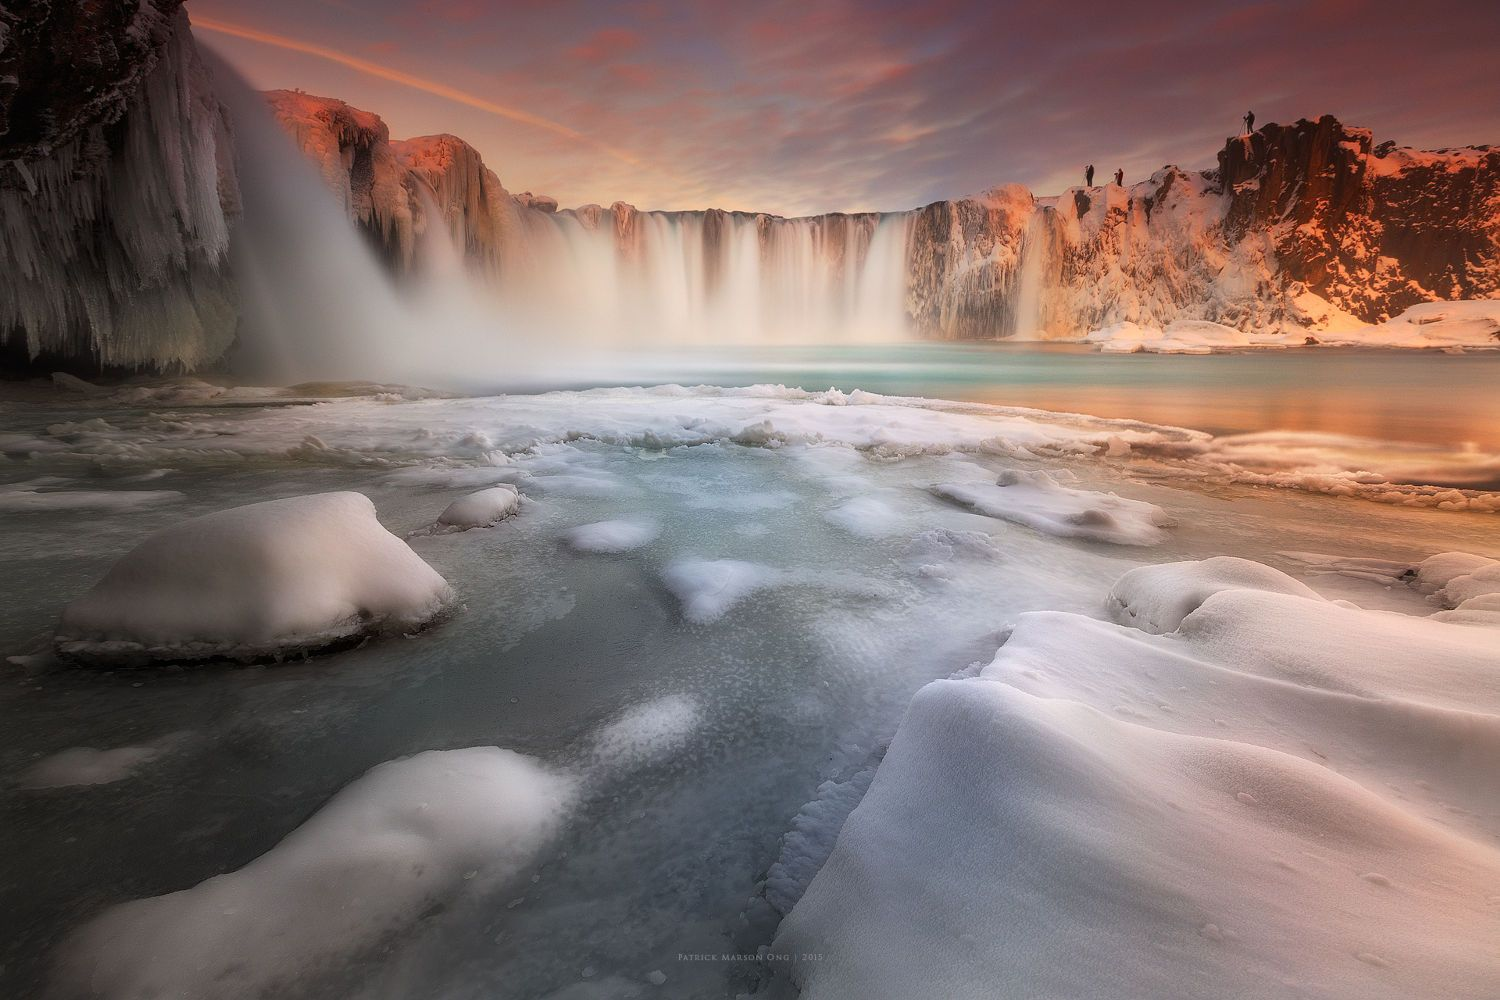 A View From Below by Patrick Marson Ong on 500px